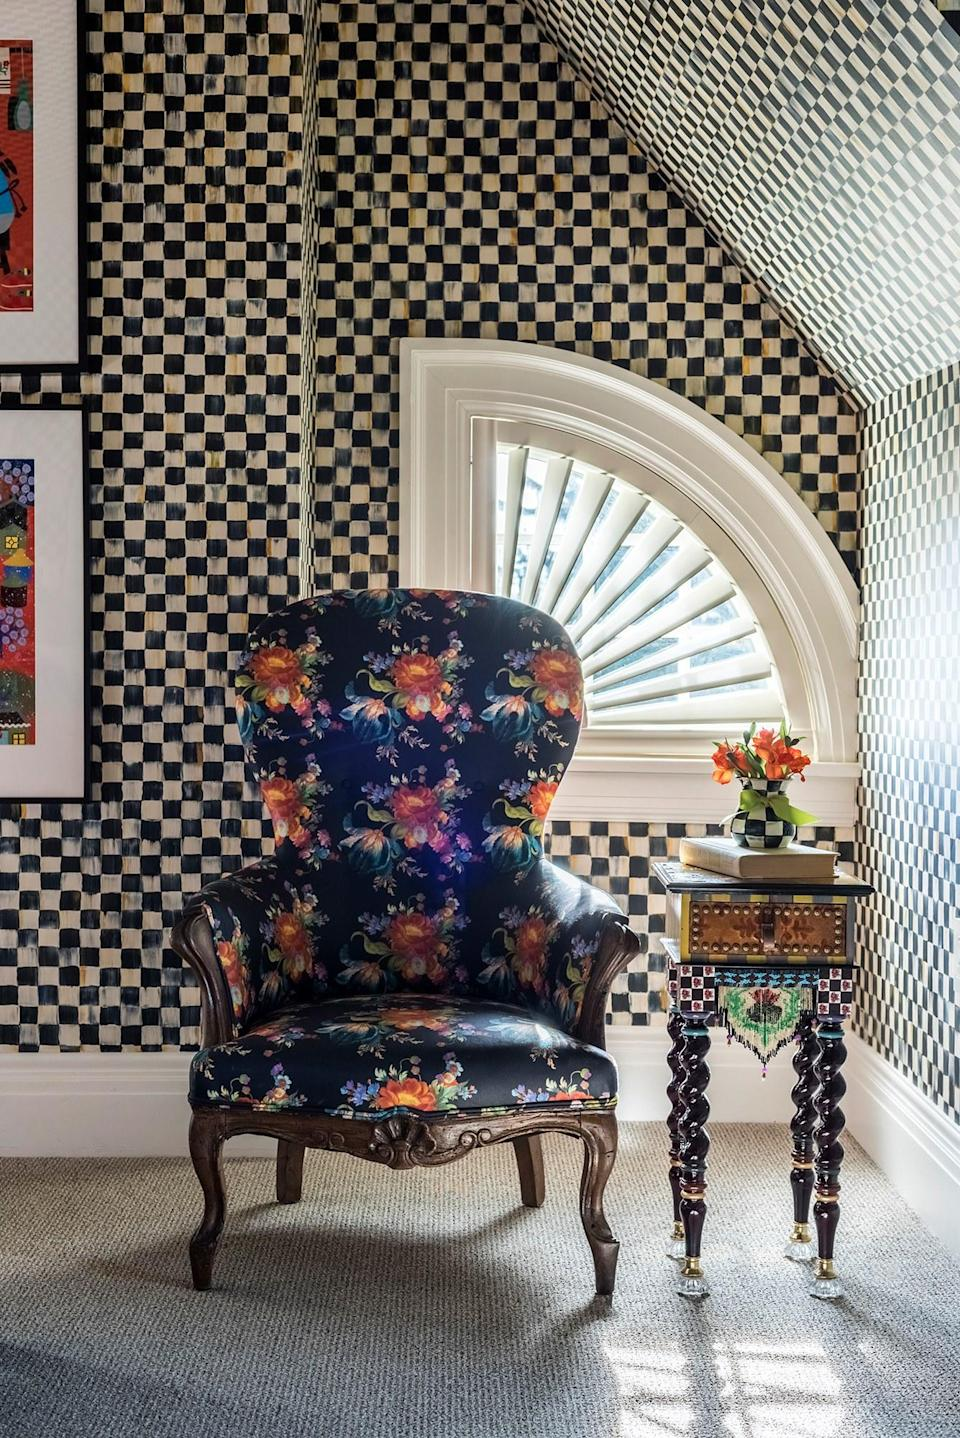 A guest room at Rowland House, decorated in Mackenzie Child's Cortley Check pattern.